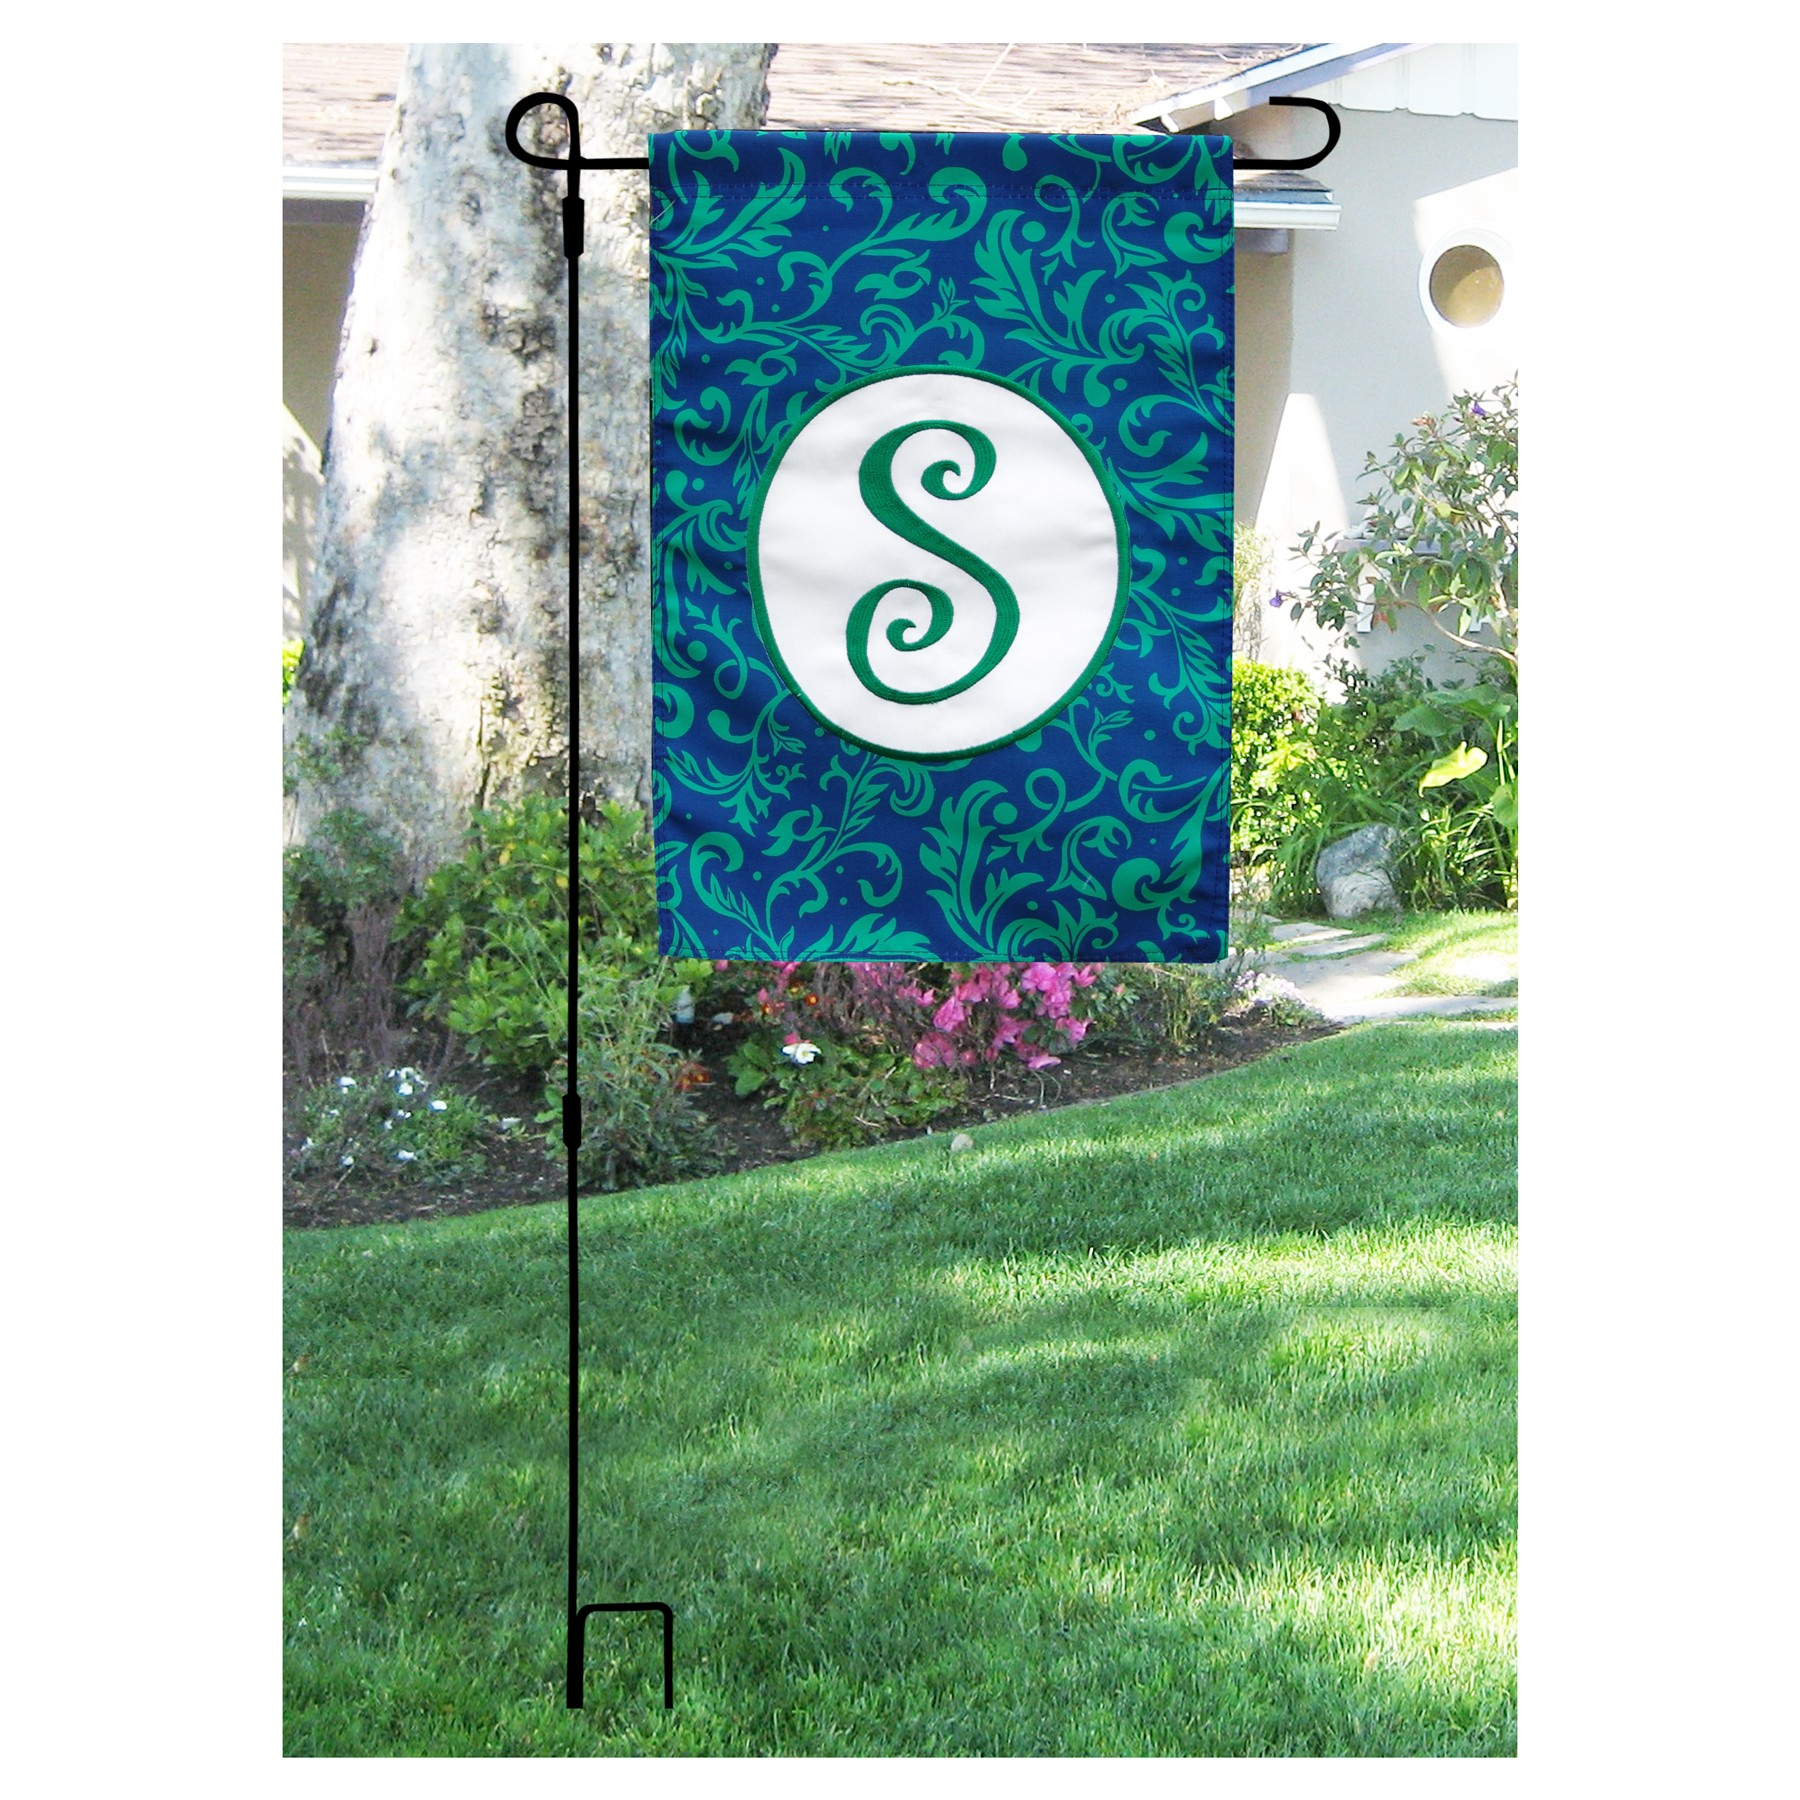 Garden flags worth going for